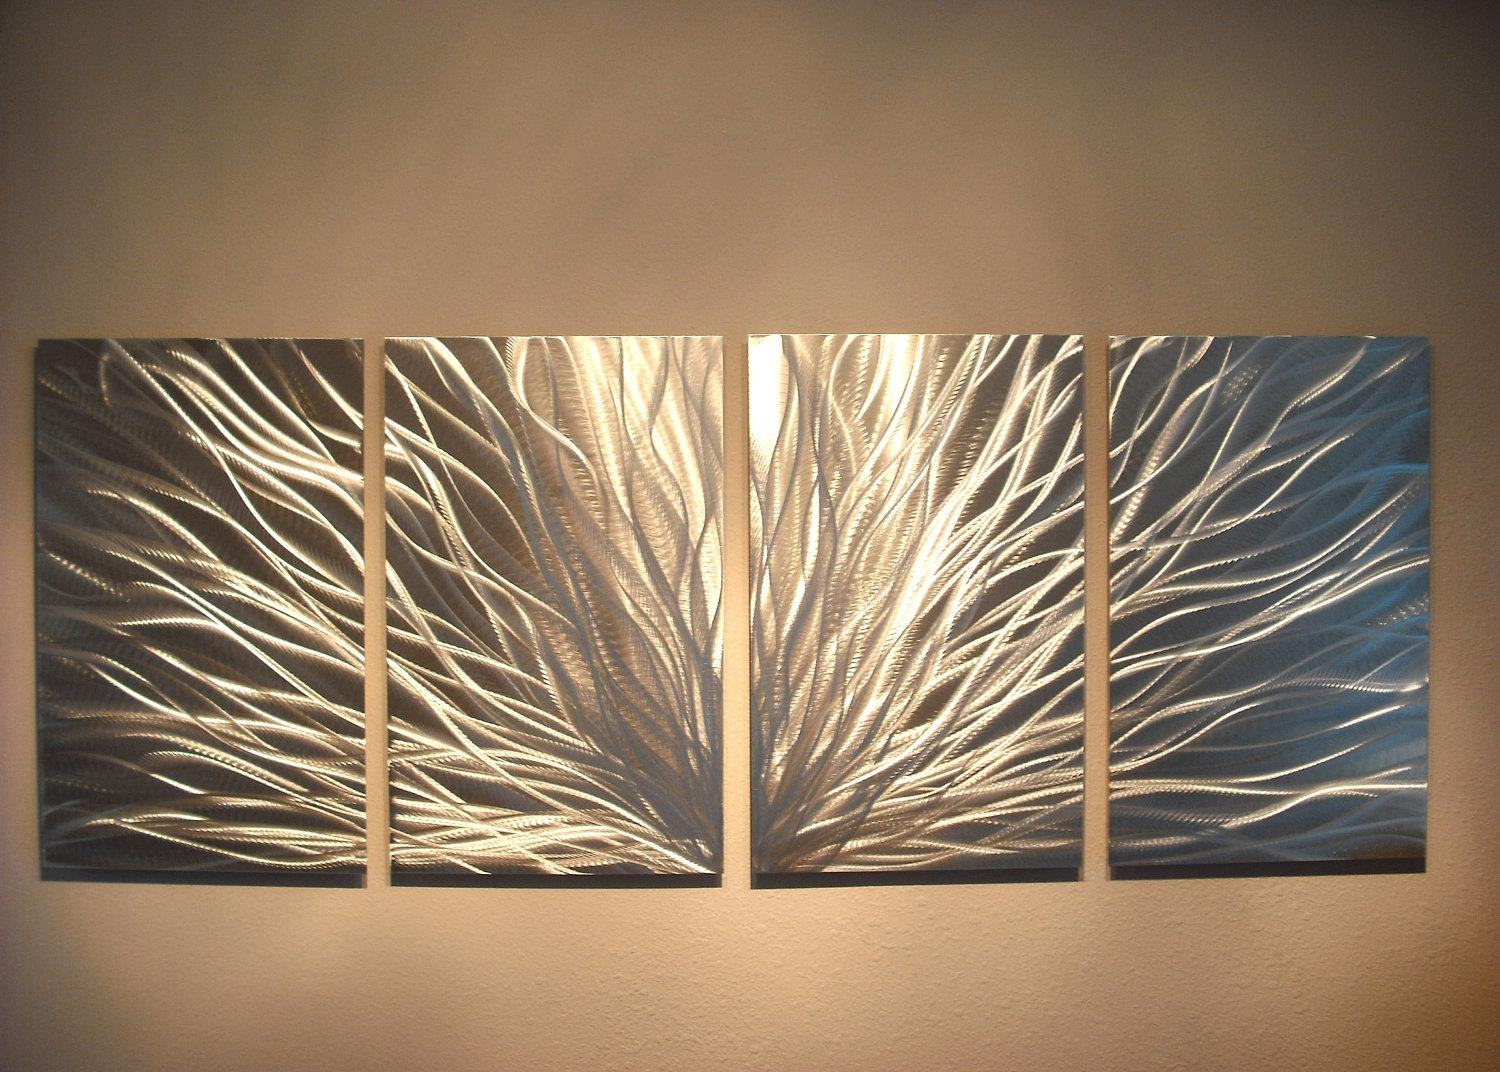 Radiance – Abstract Metal Wall Art Contemporary Modern Decor Inside Large Metal Art (Image 13 of 20)